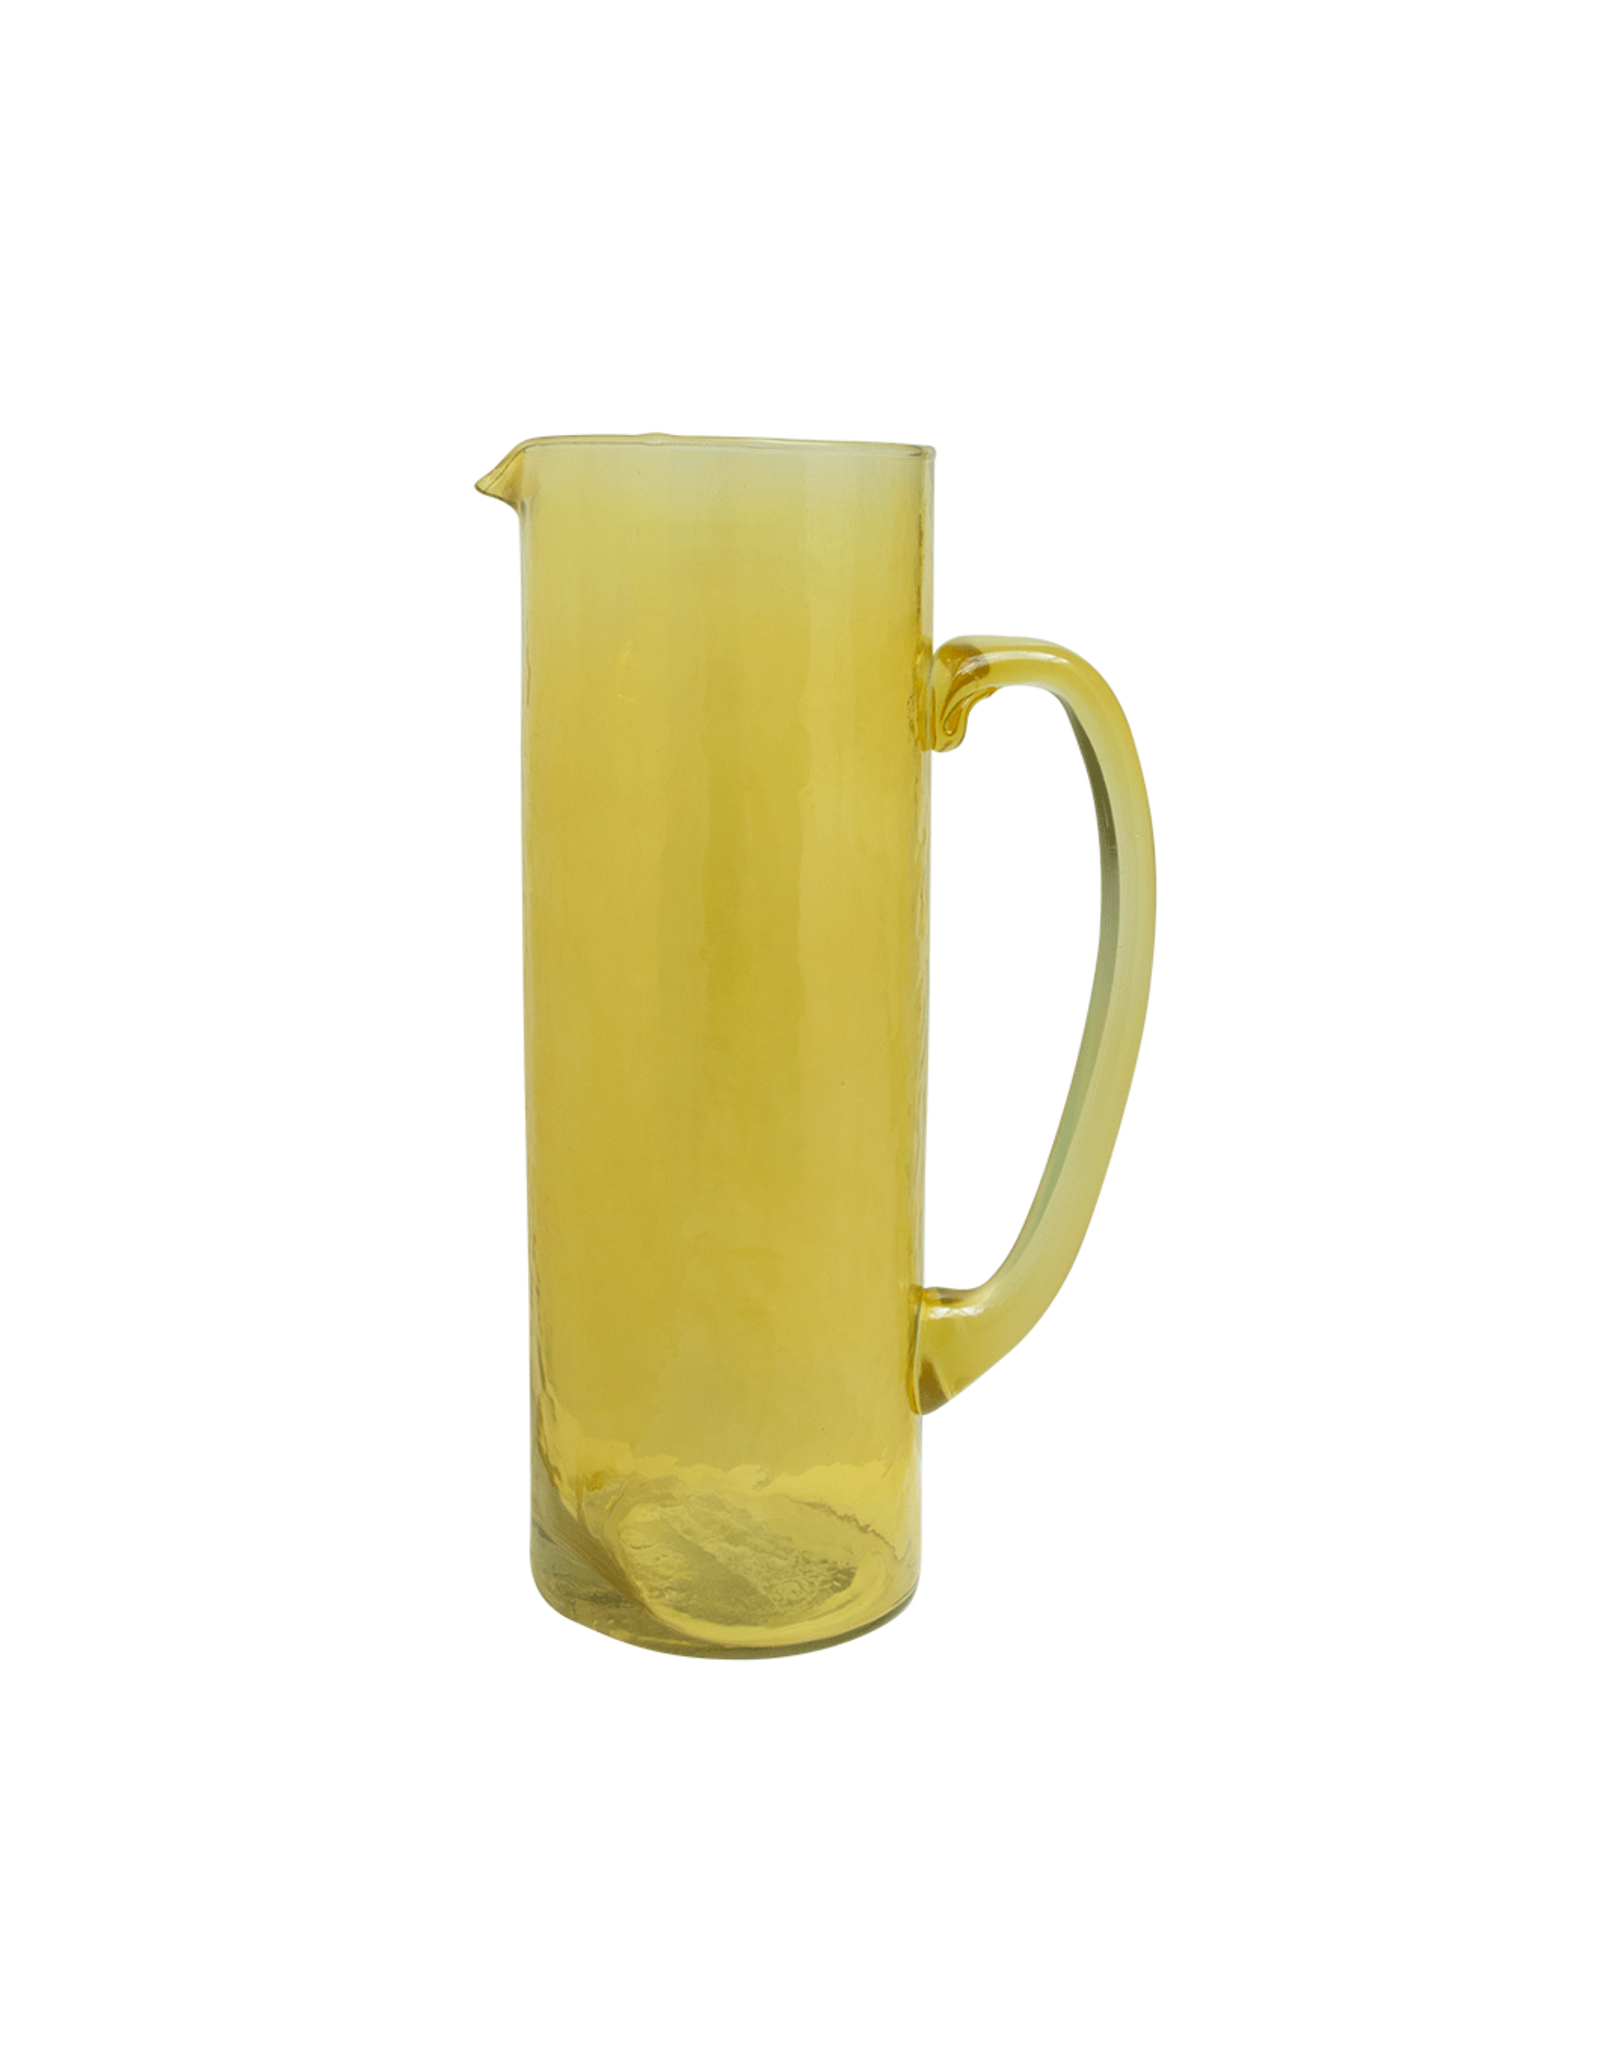 UNC Amsterdam JUG RECYCLED GLASS, YOLK YELLOW